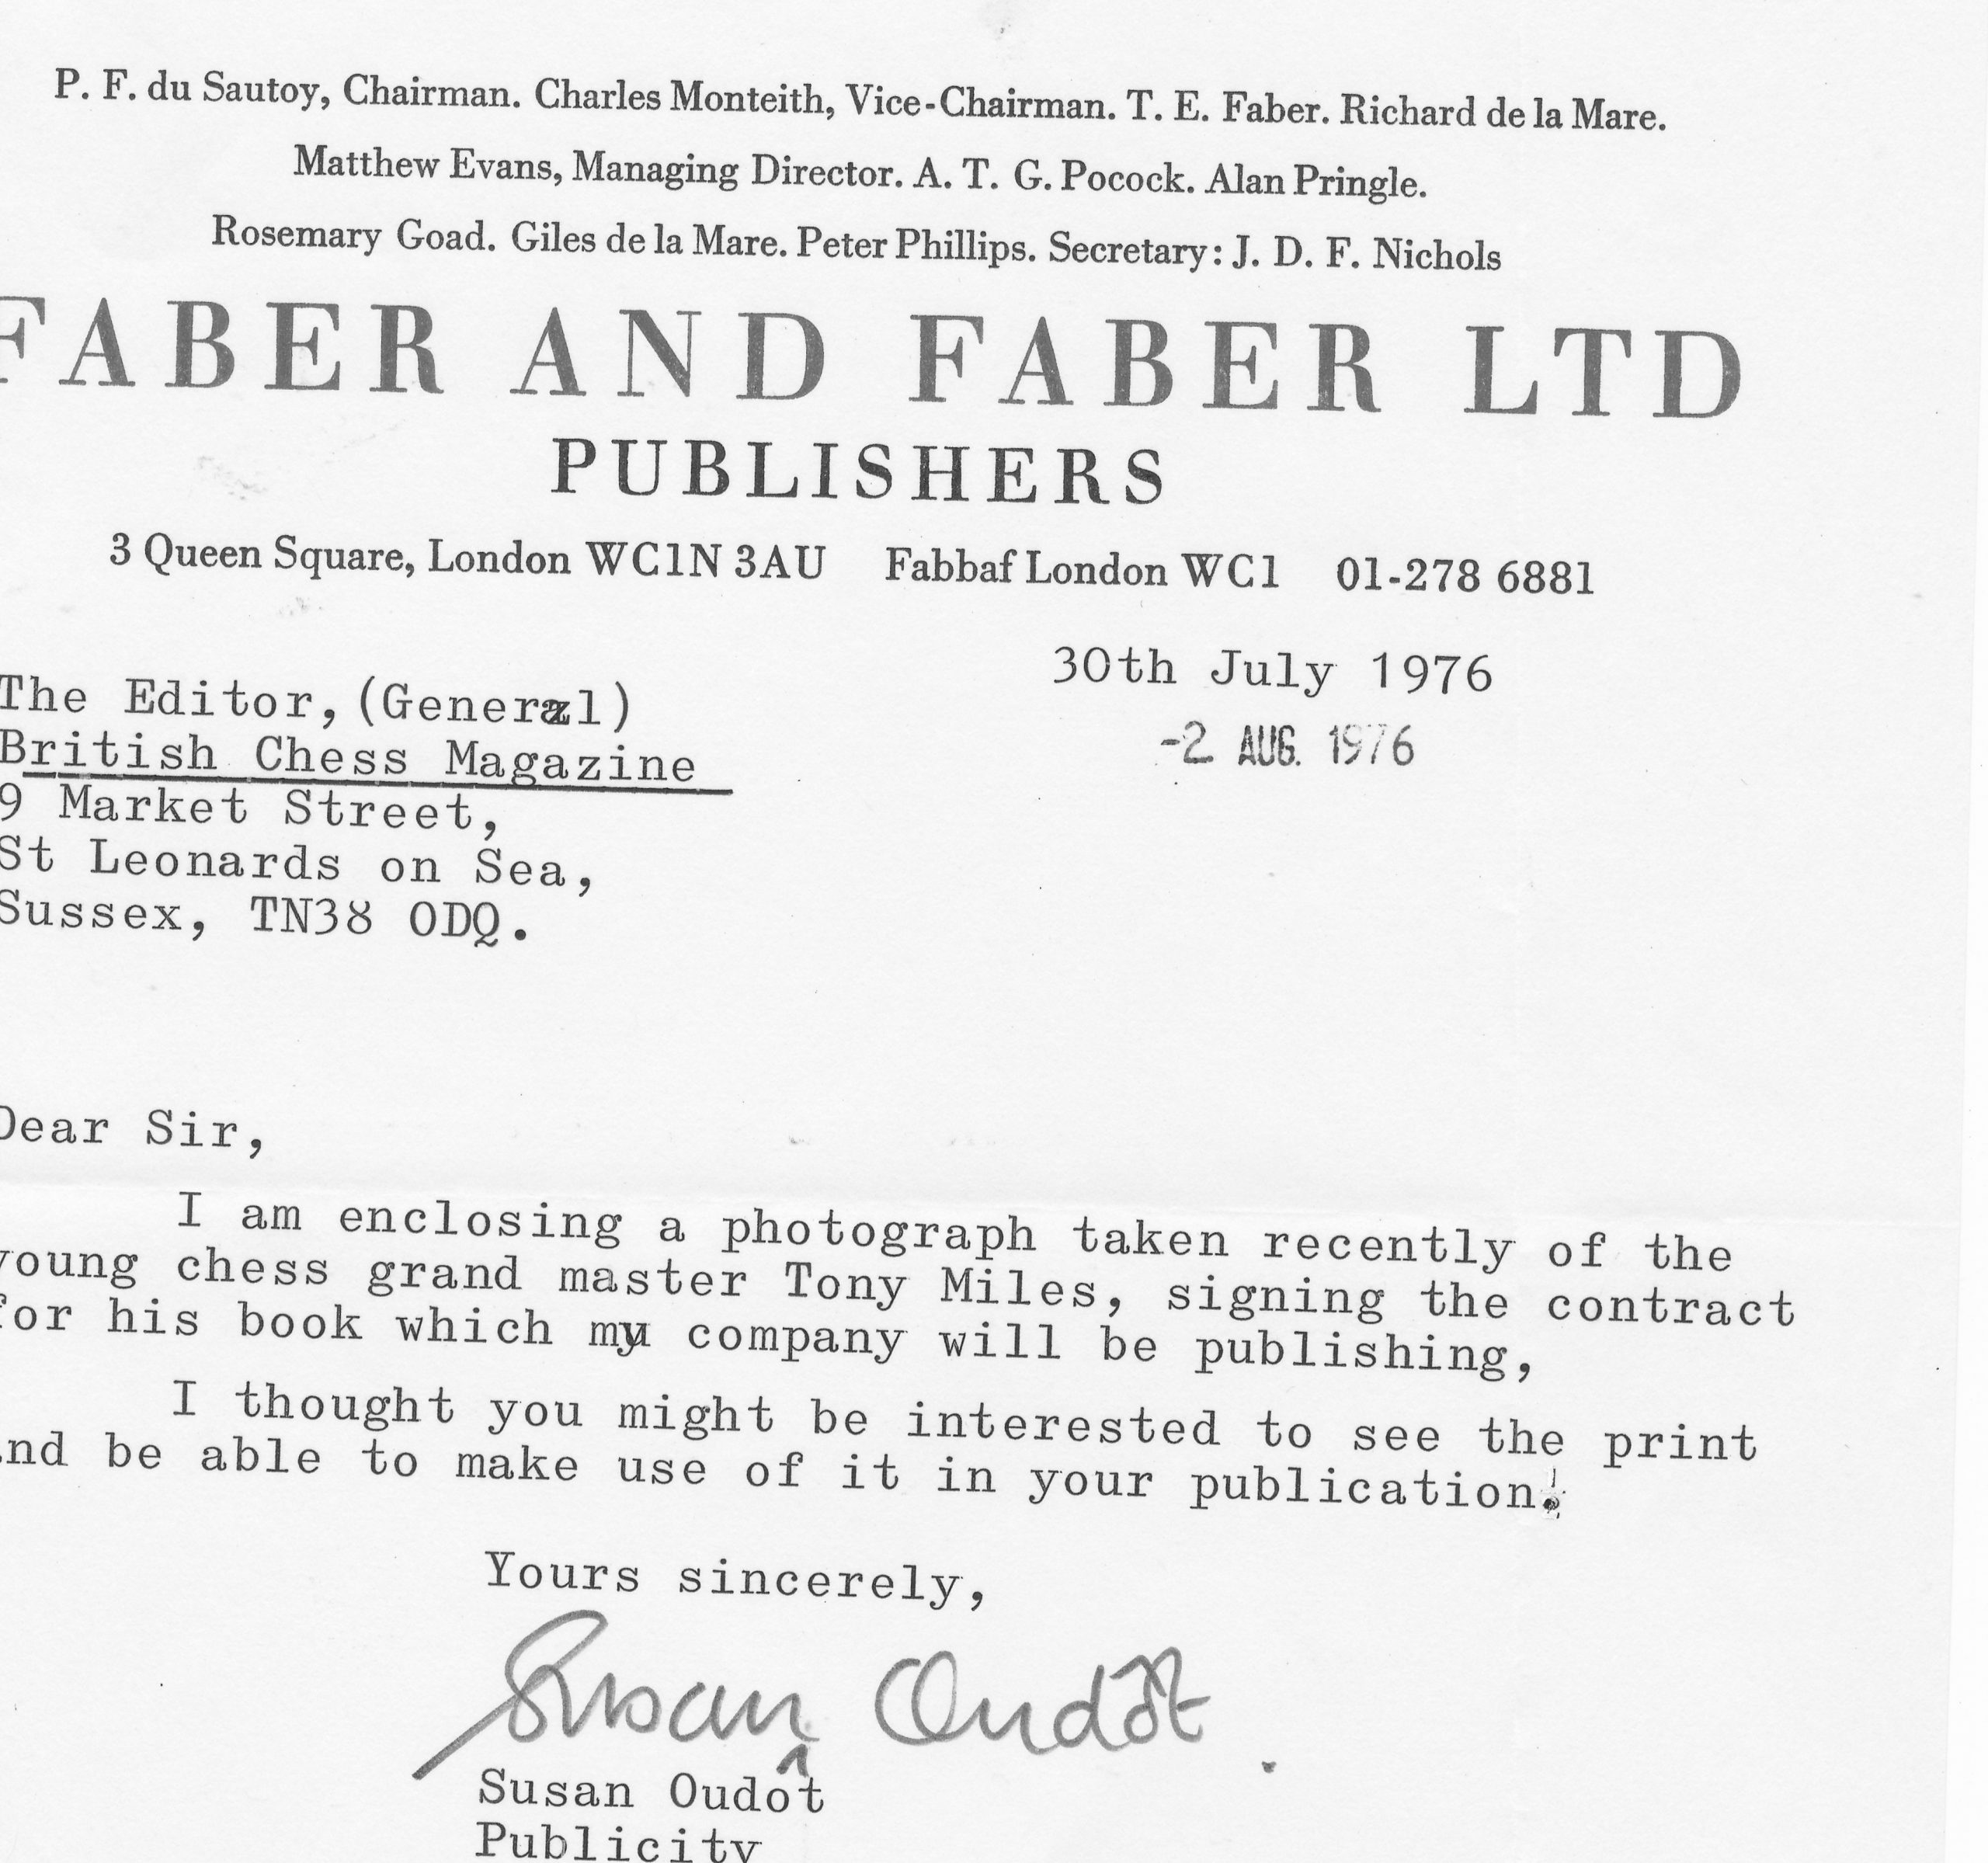 Accompanying letter for above photograph